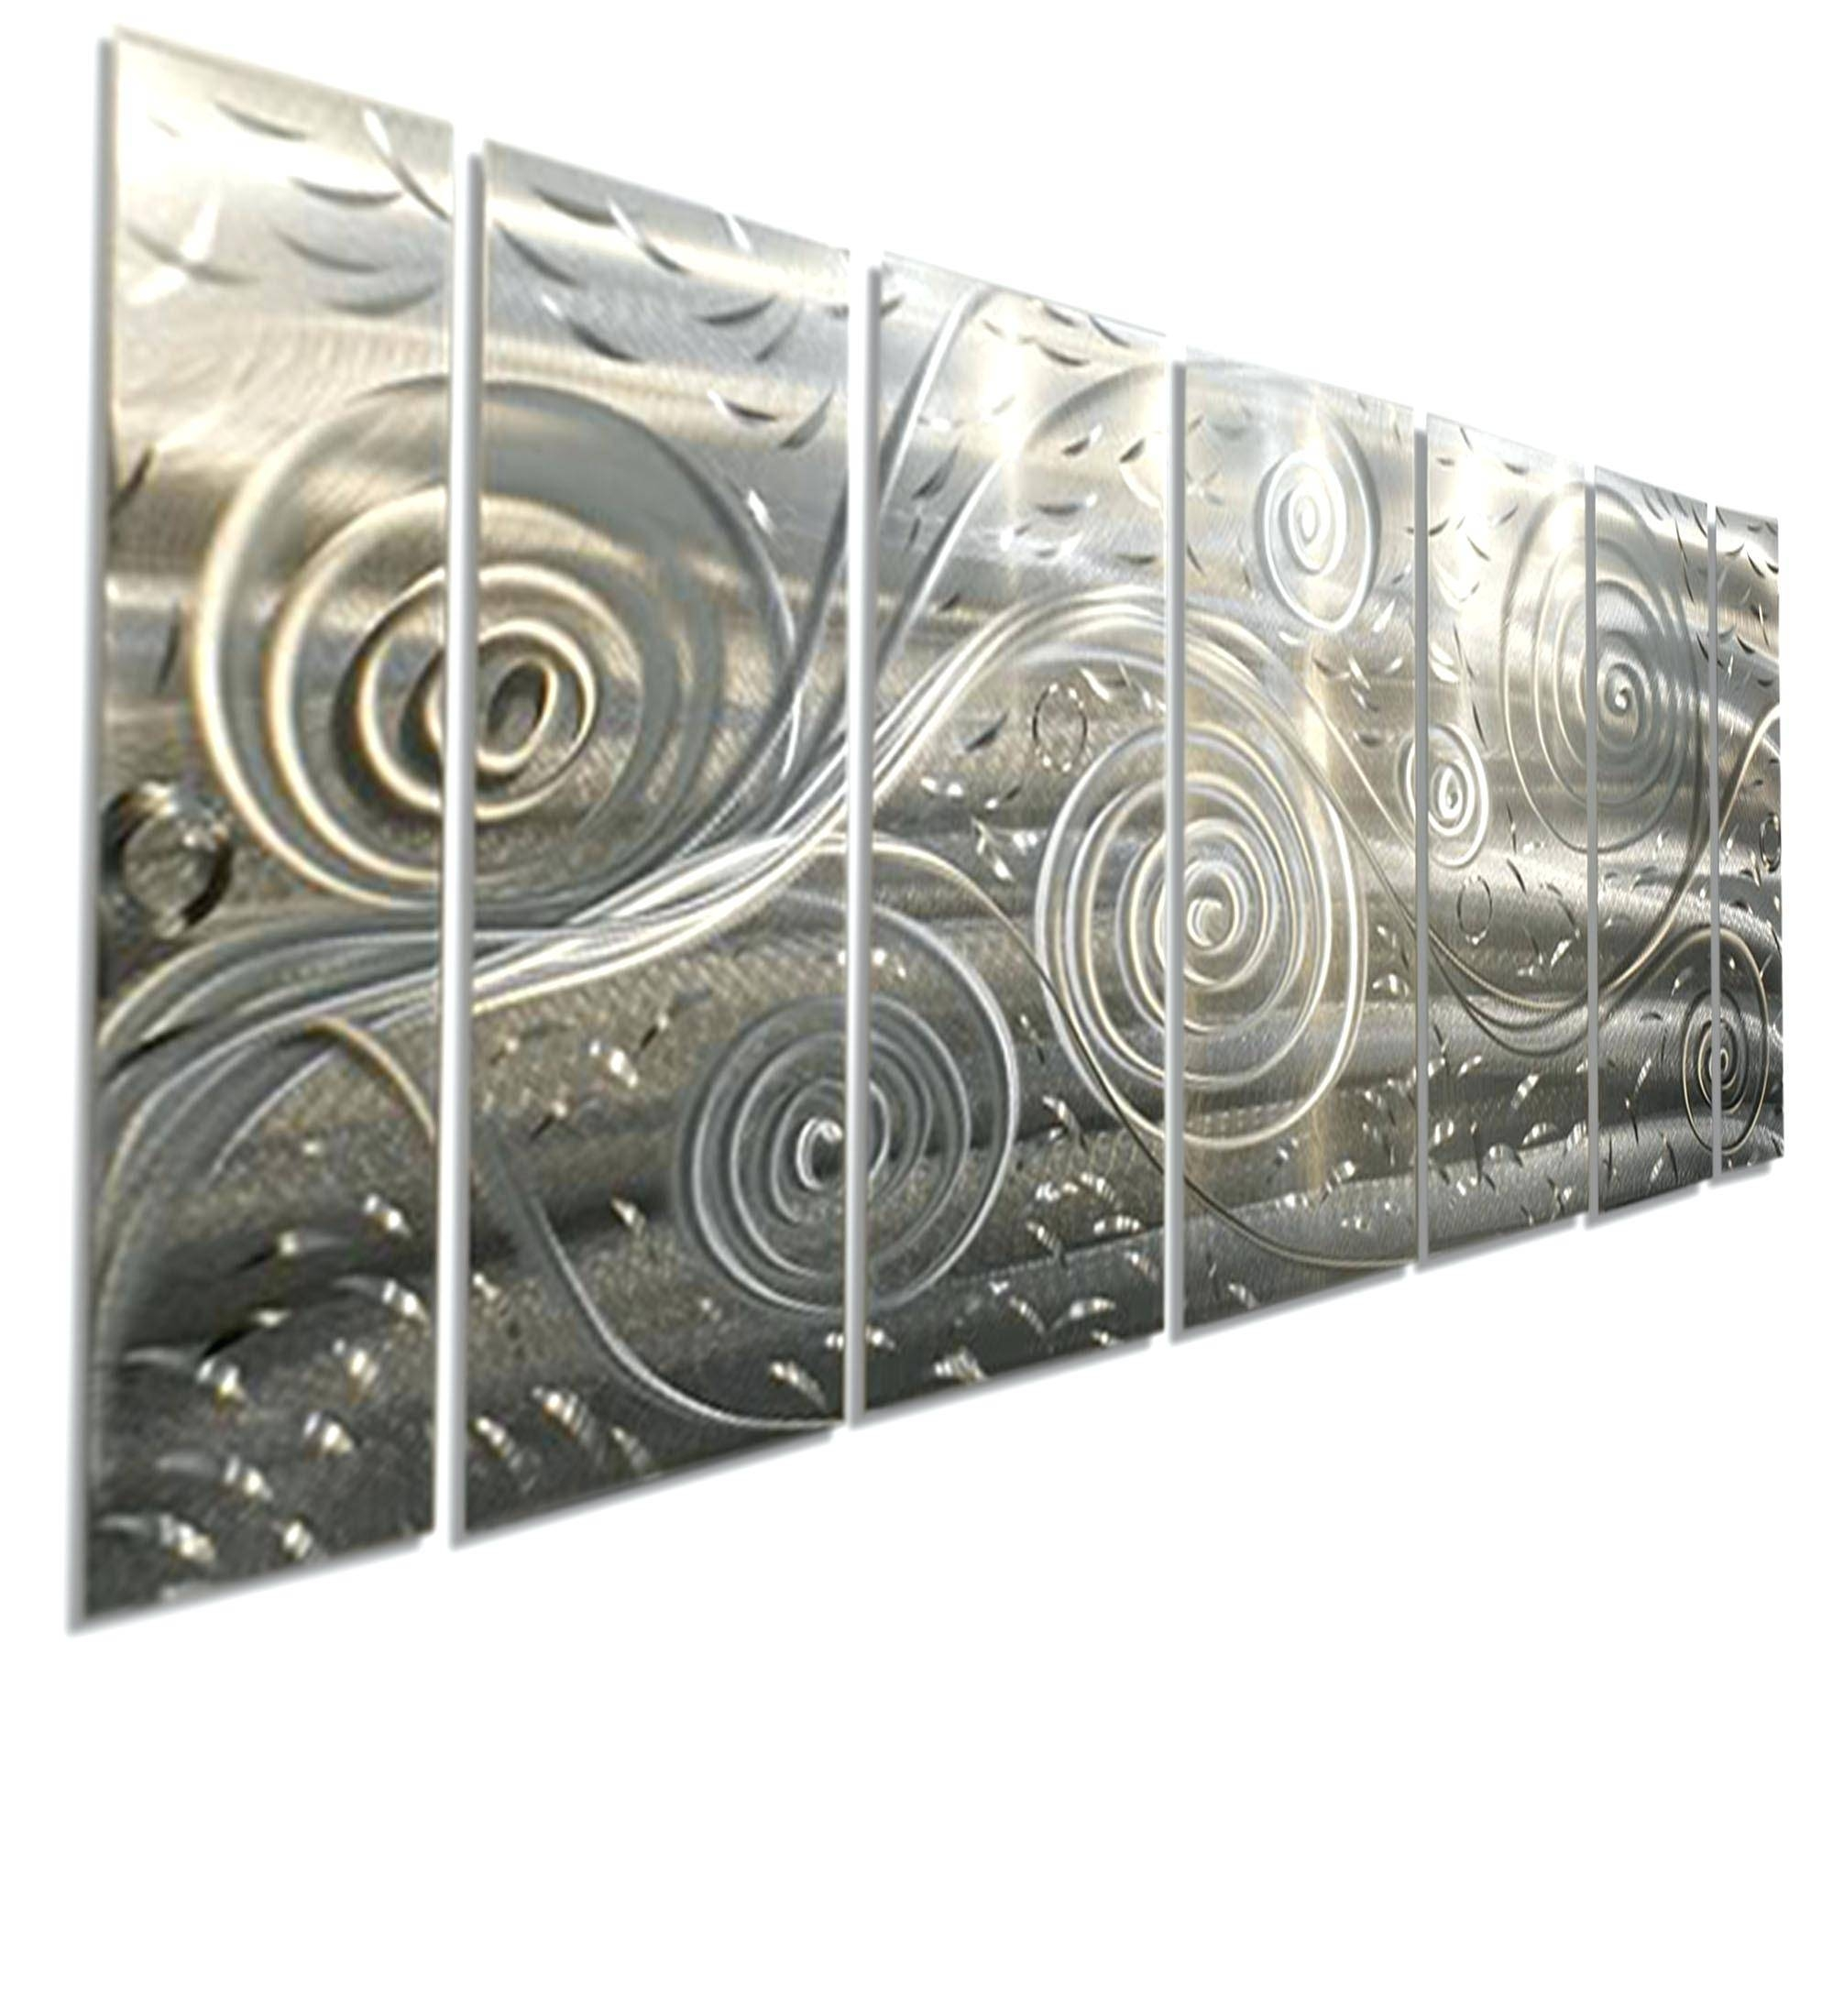 Wall Decor : Mesmerizing See Larger Image Modern Abstract Metal Inside 2017 Modern Wall Art Uk (View 18 of 20)